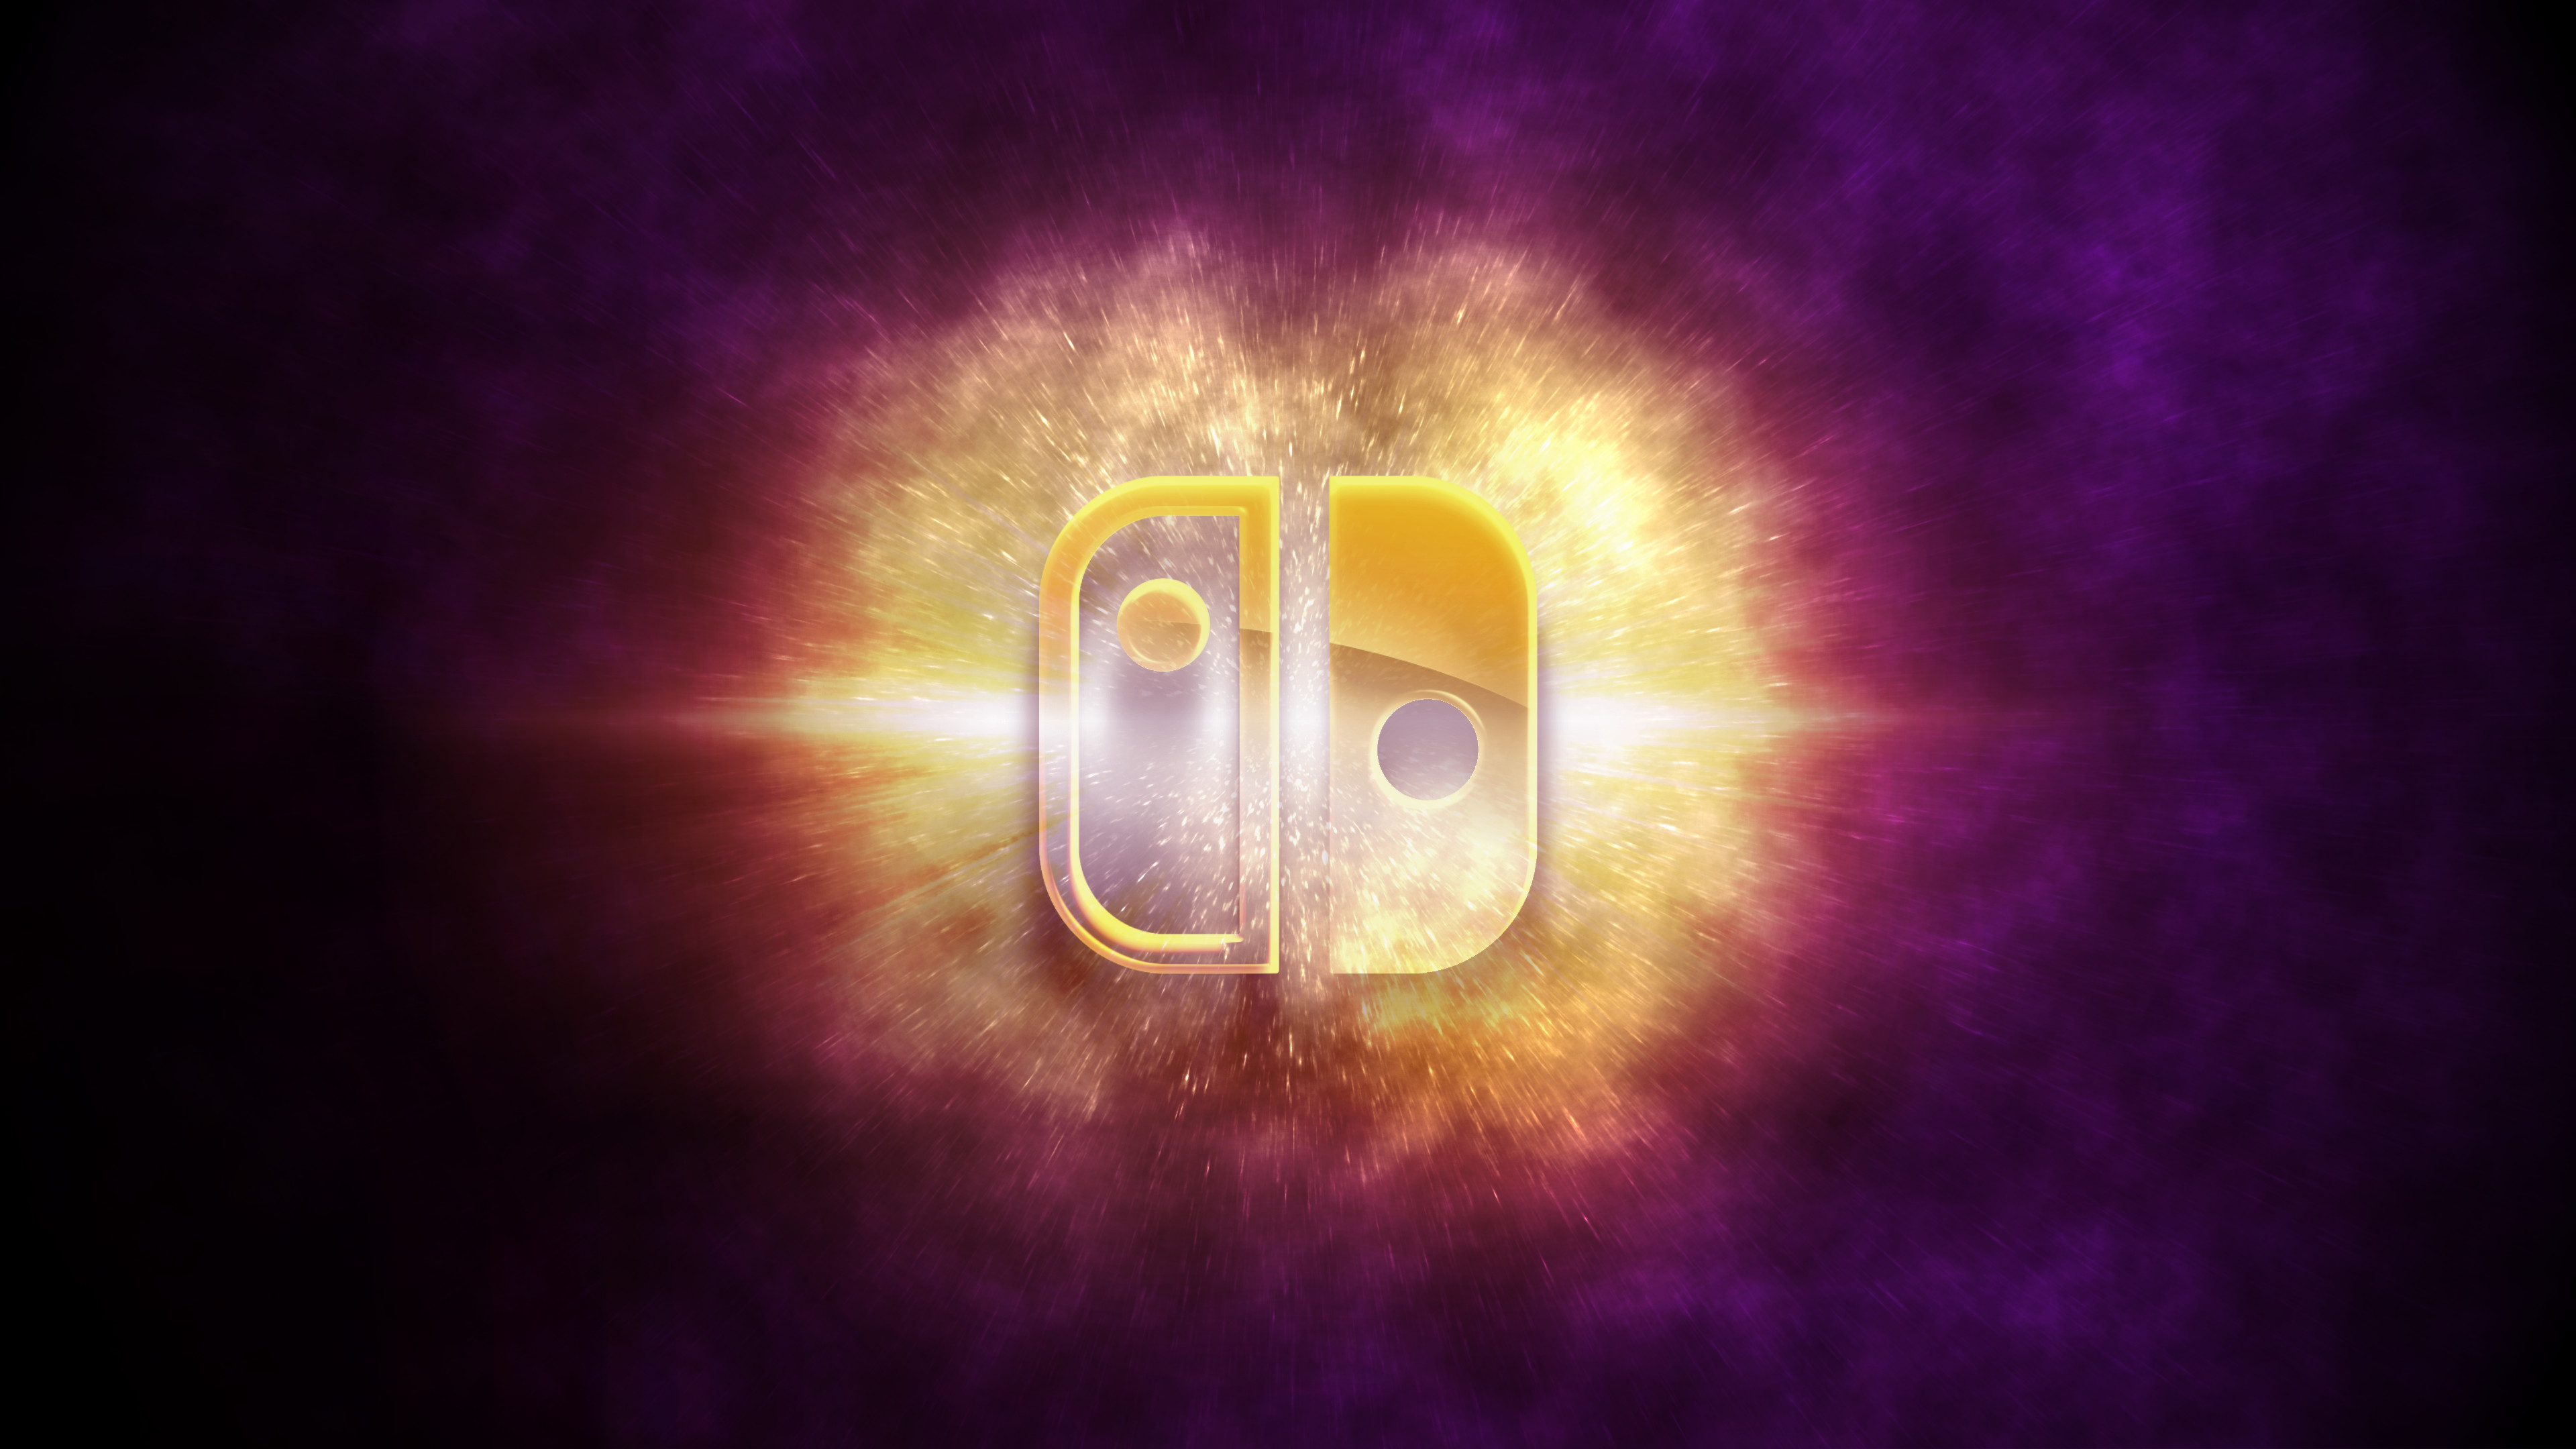 … Nintendo Switch: Galaxy Wallpaper by Mauritaly